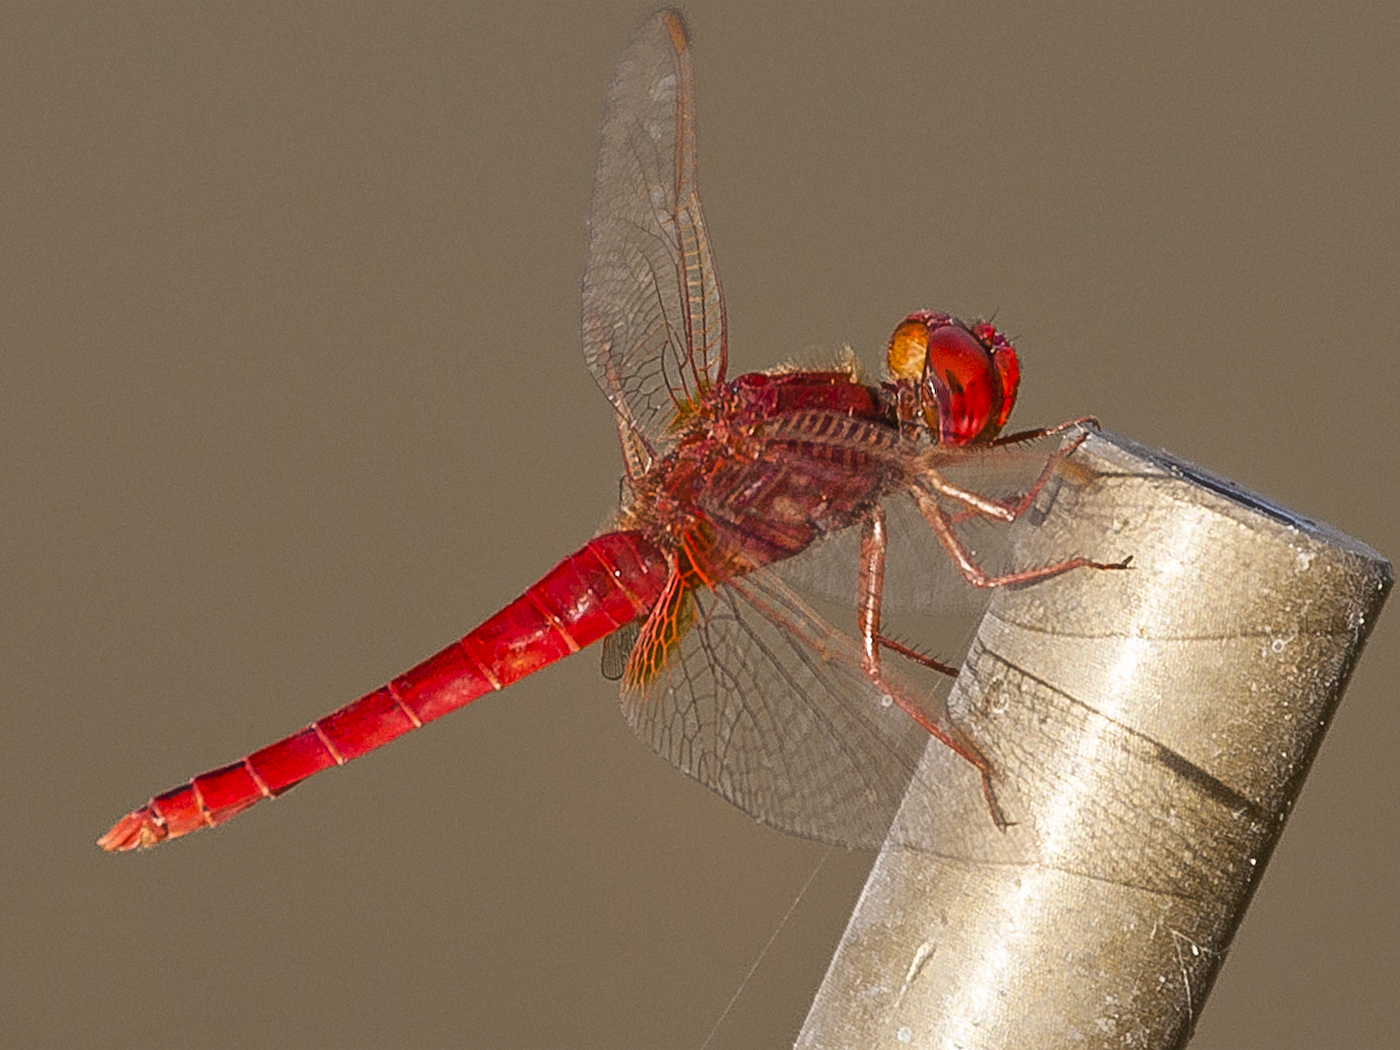 093 Red Dragon Fly2.jpg